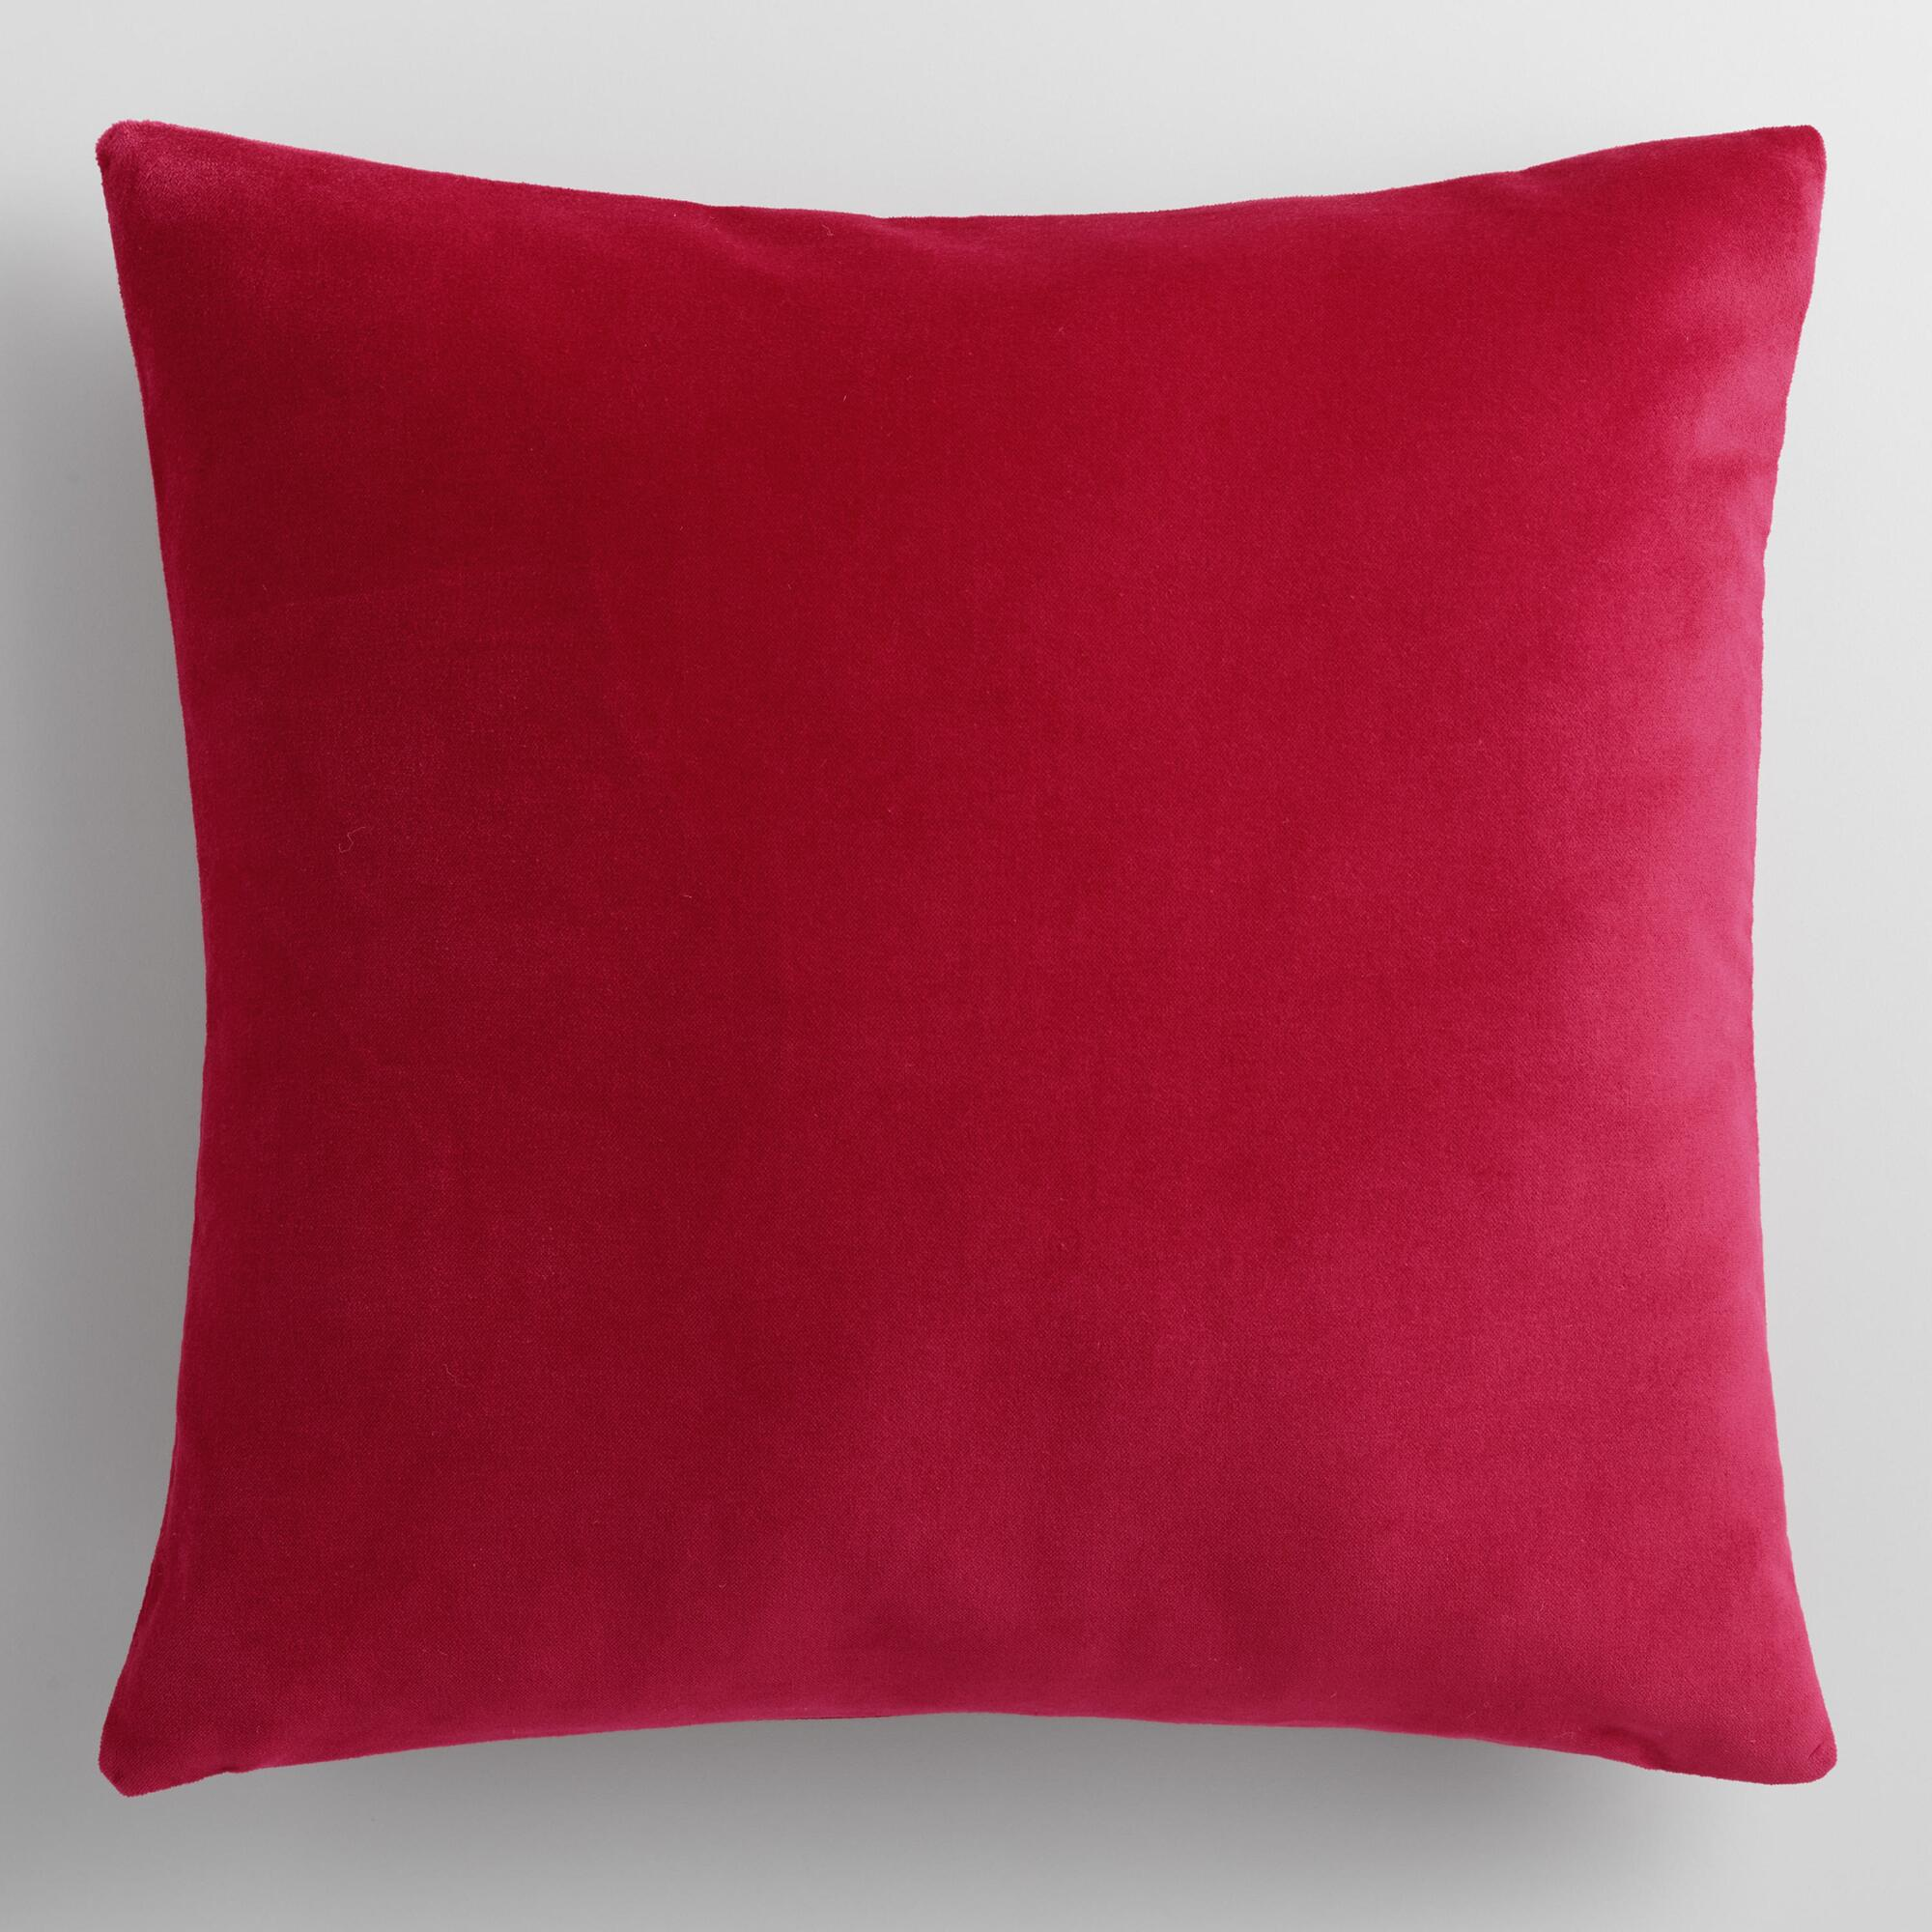 Throw Pillows Velvet : Cherry Red Velvet Throw Pillow World Market